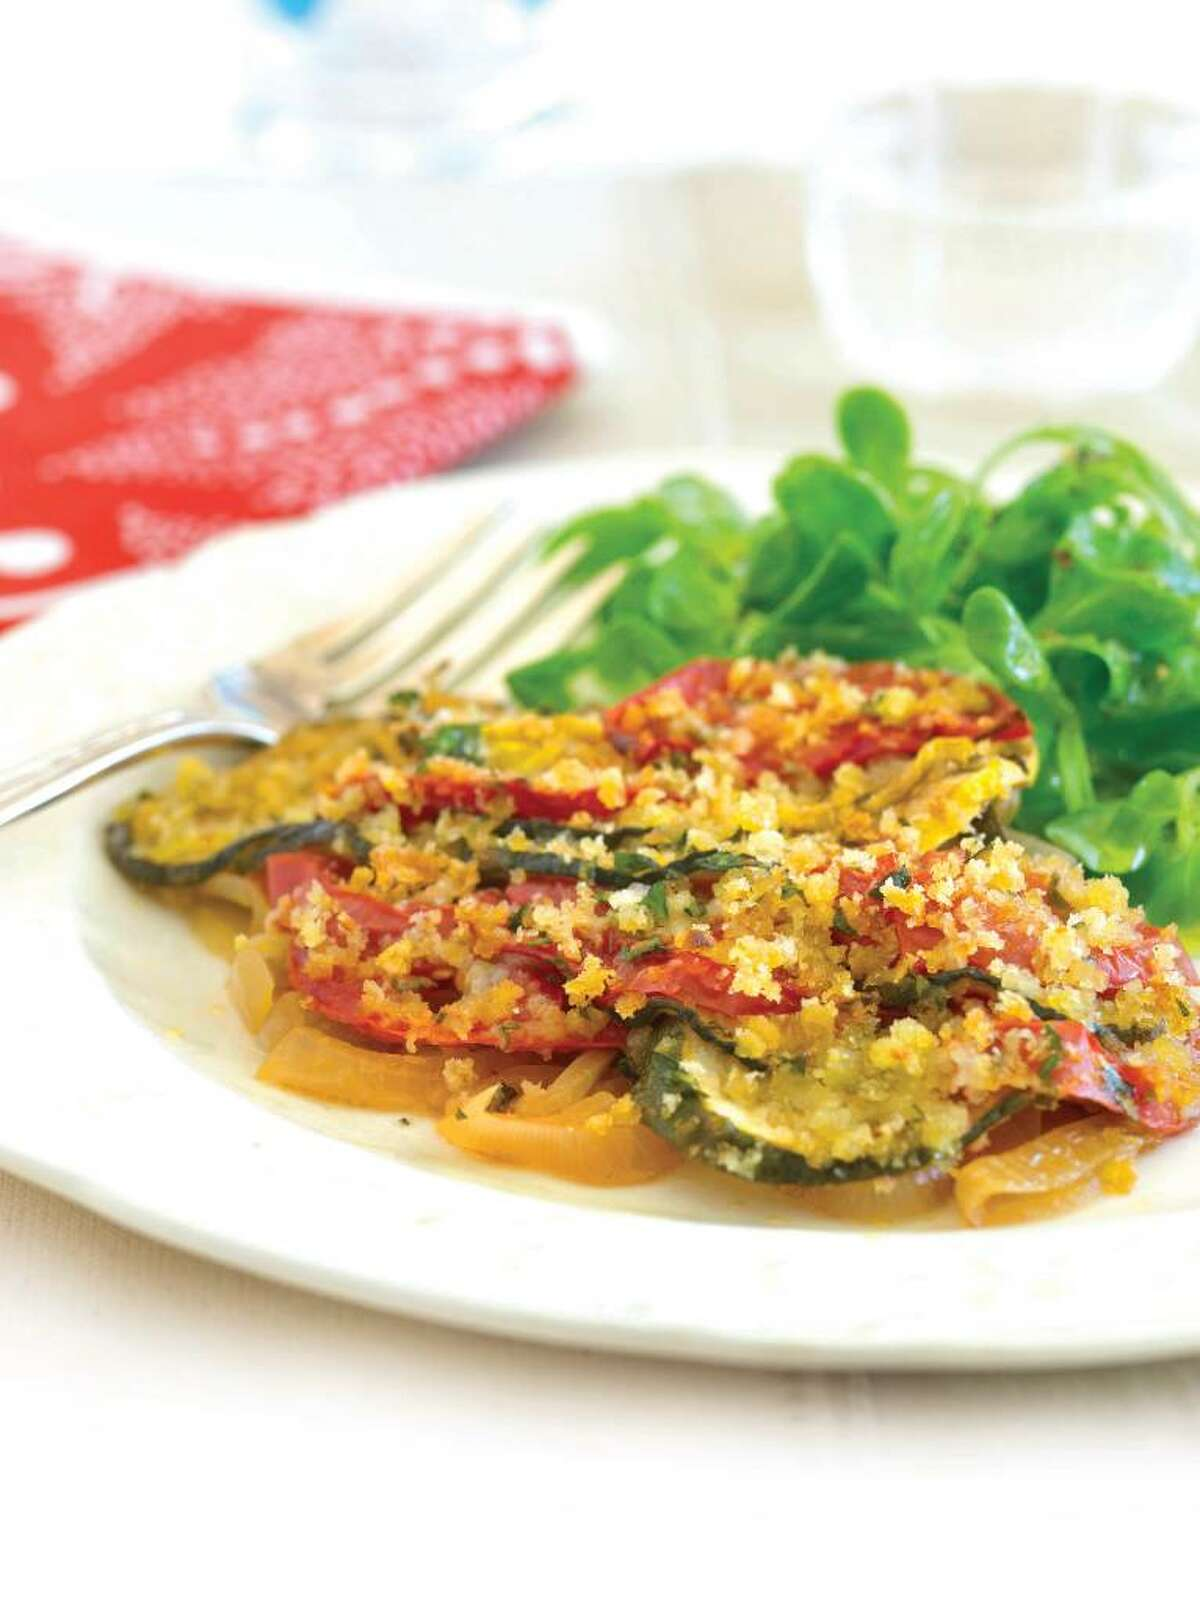 Summer Vegetable and Tomato Tian with Parmesan Bread Crumbs